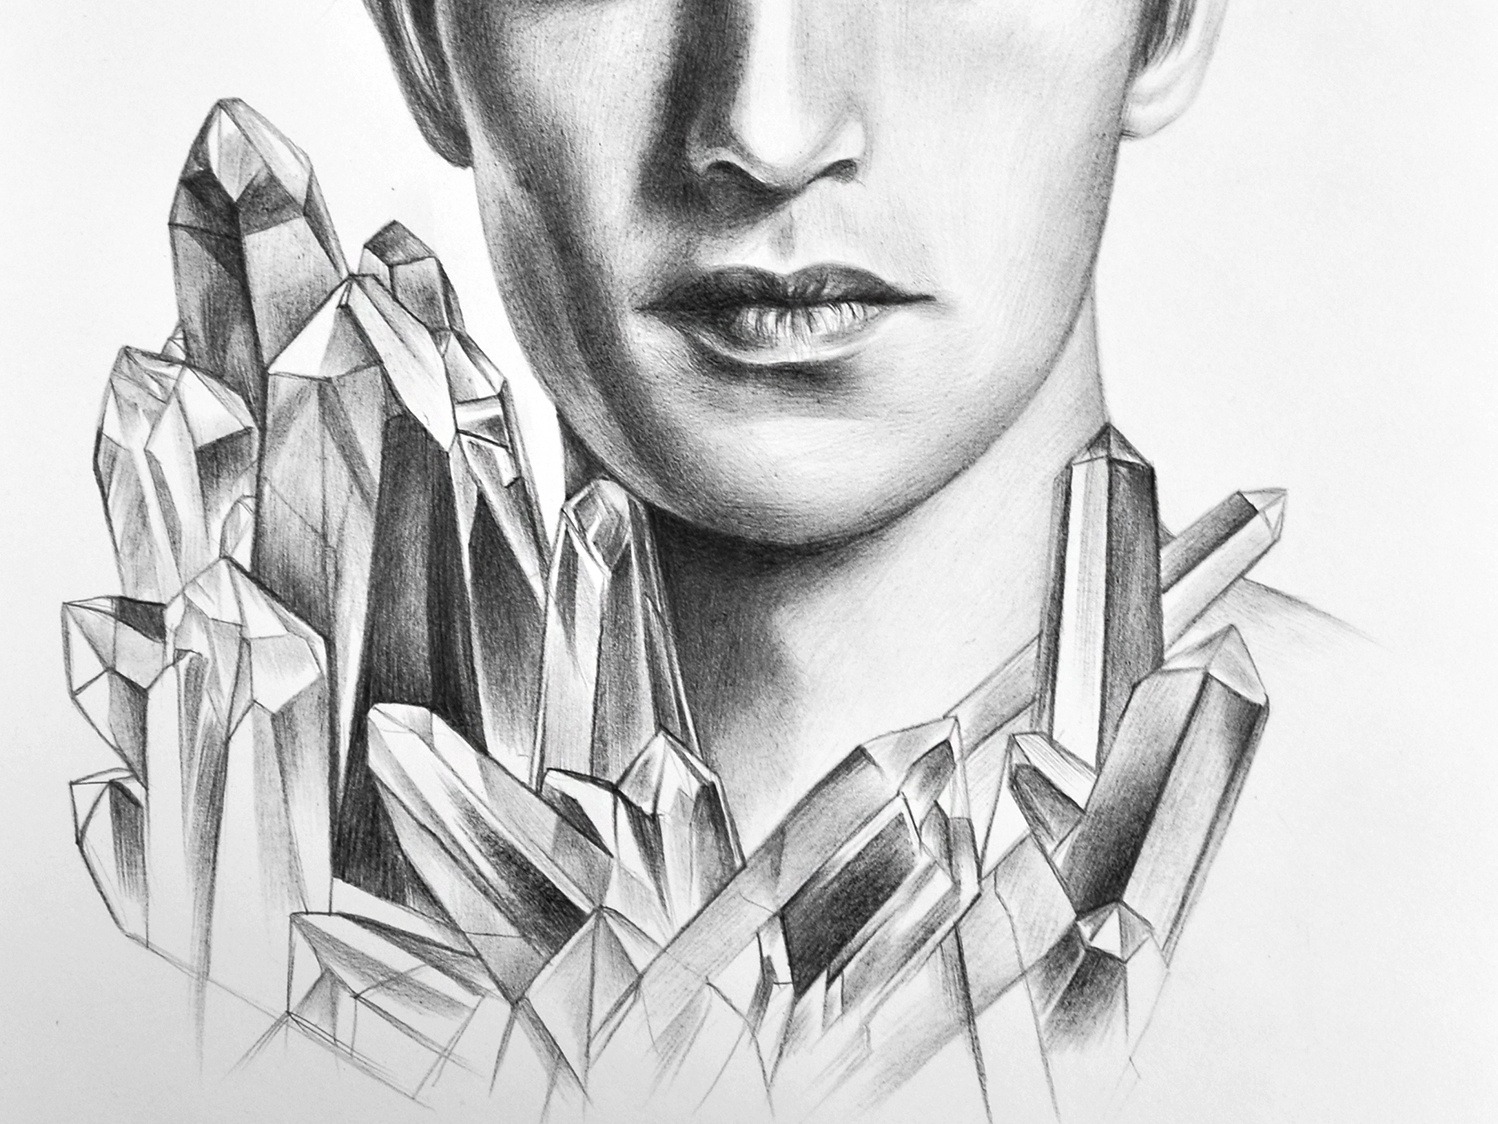 Crystal boys series beautiful artwork illustration handdrawn crystal graphic portrait fashion illustration pencil drawing pencil art